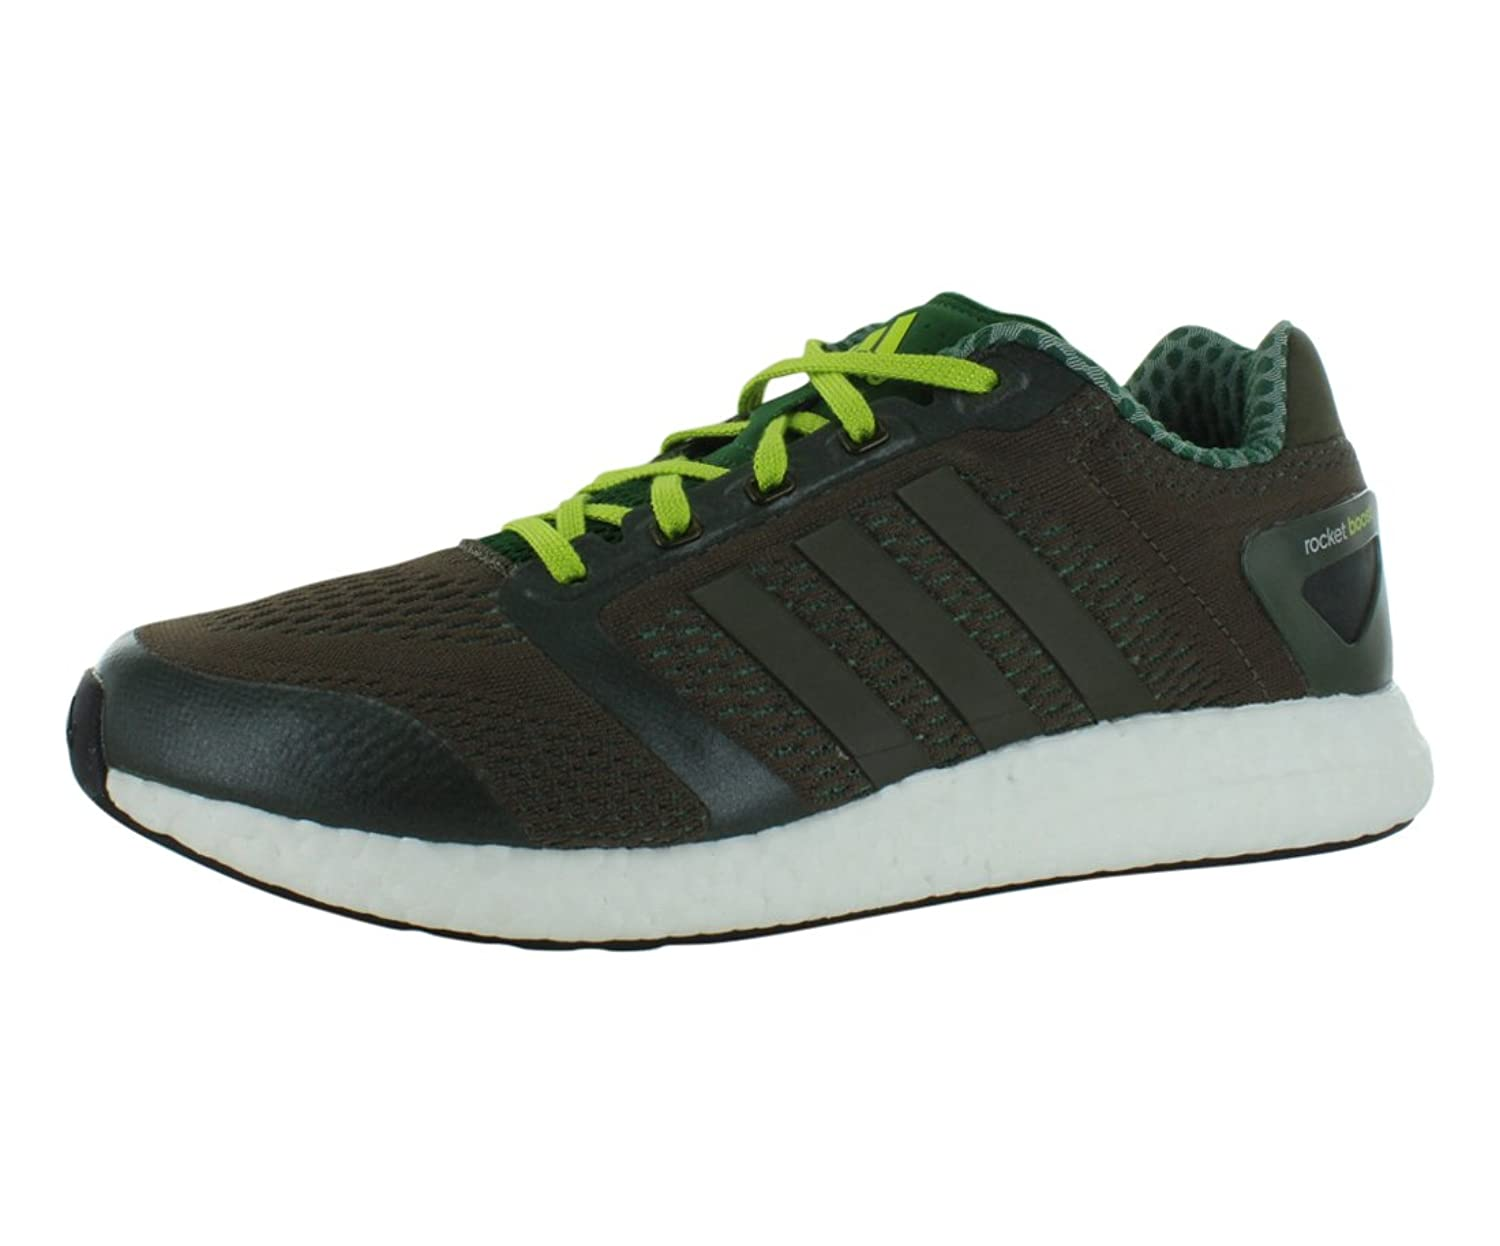 Amazon.com | adidas CC rocket boost M mens running trainers sneakers | Shoes